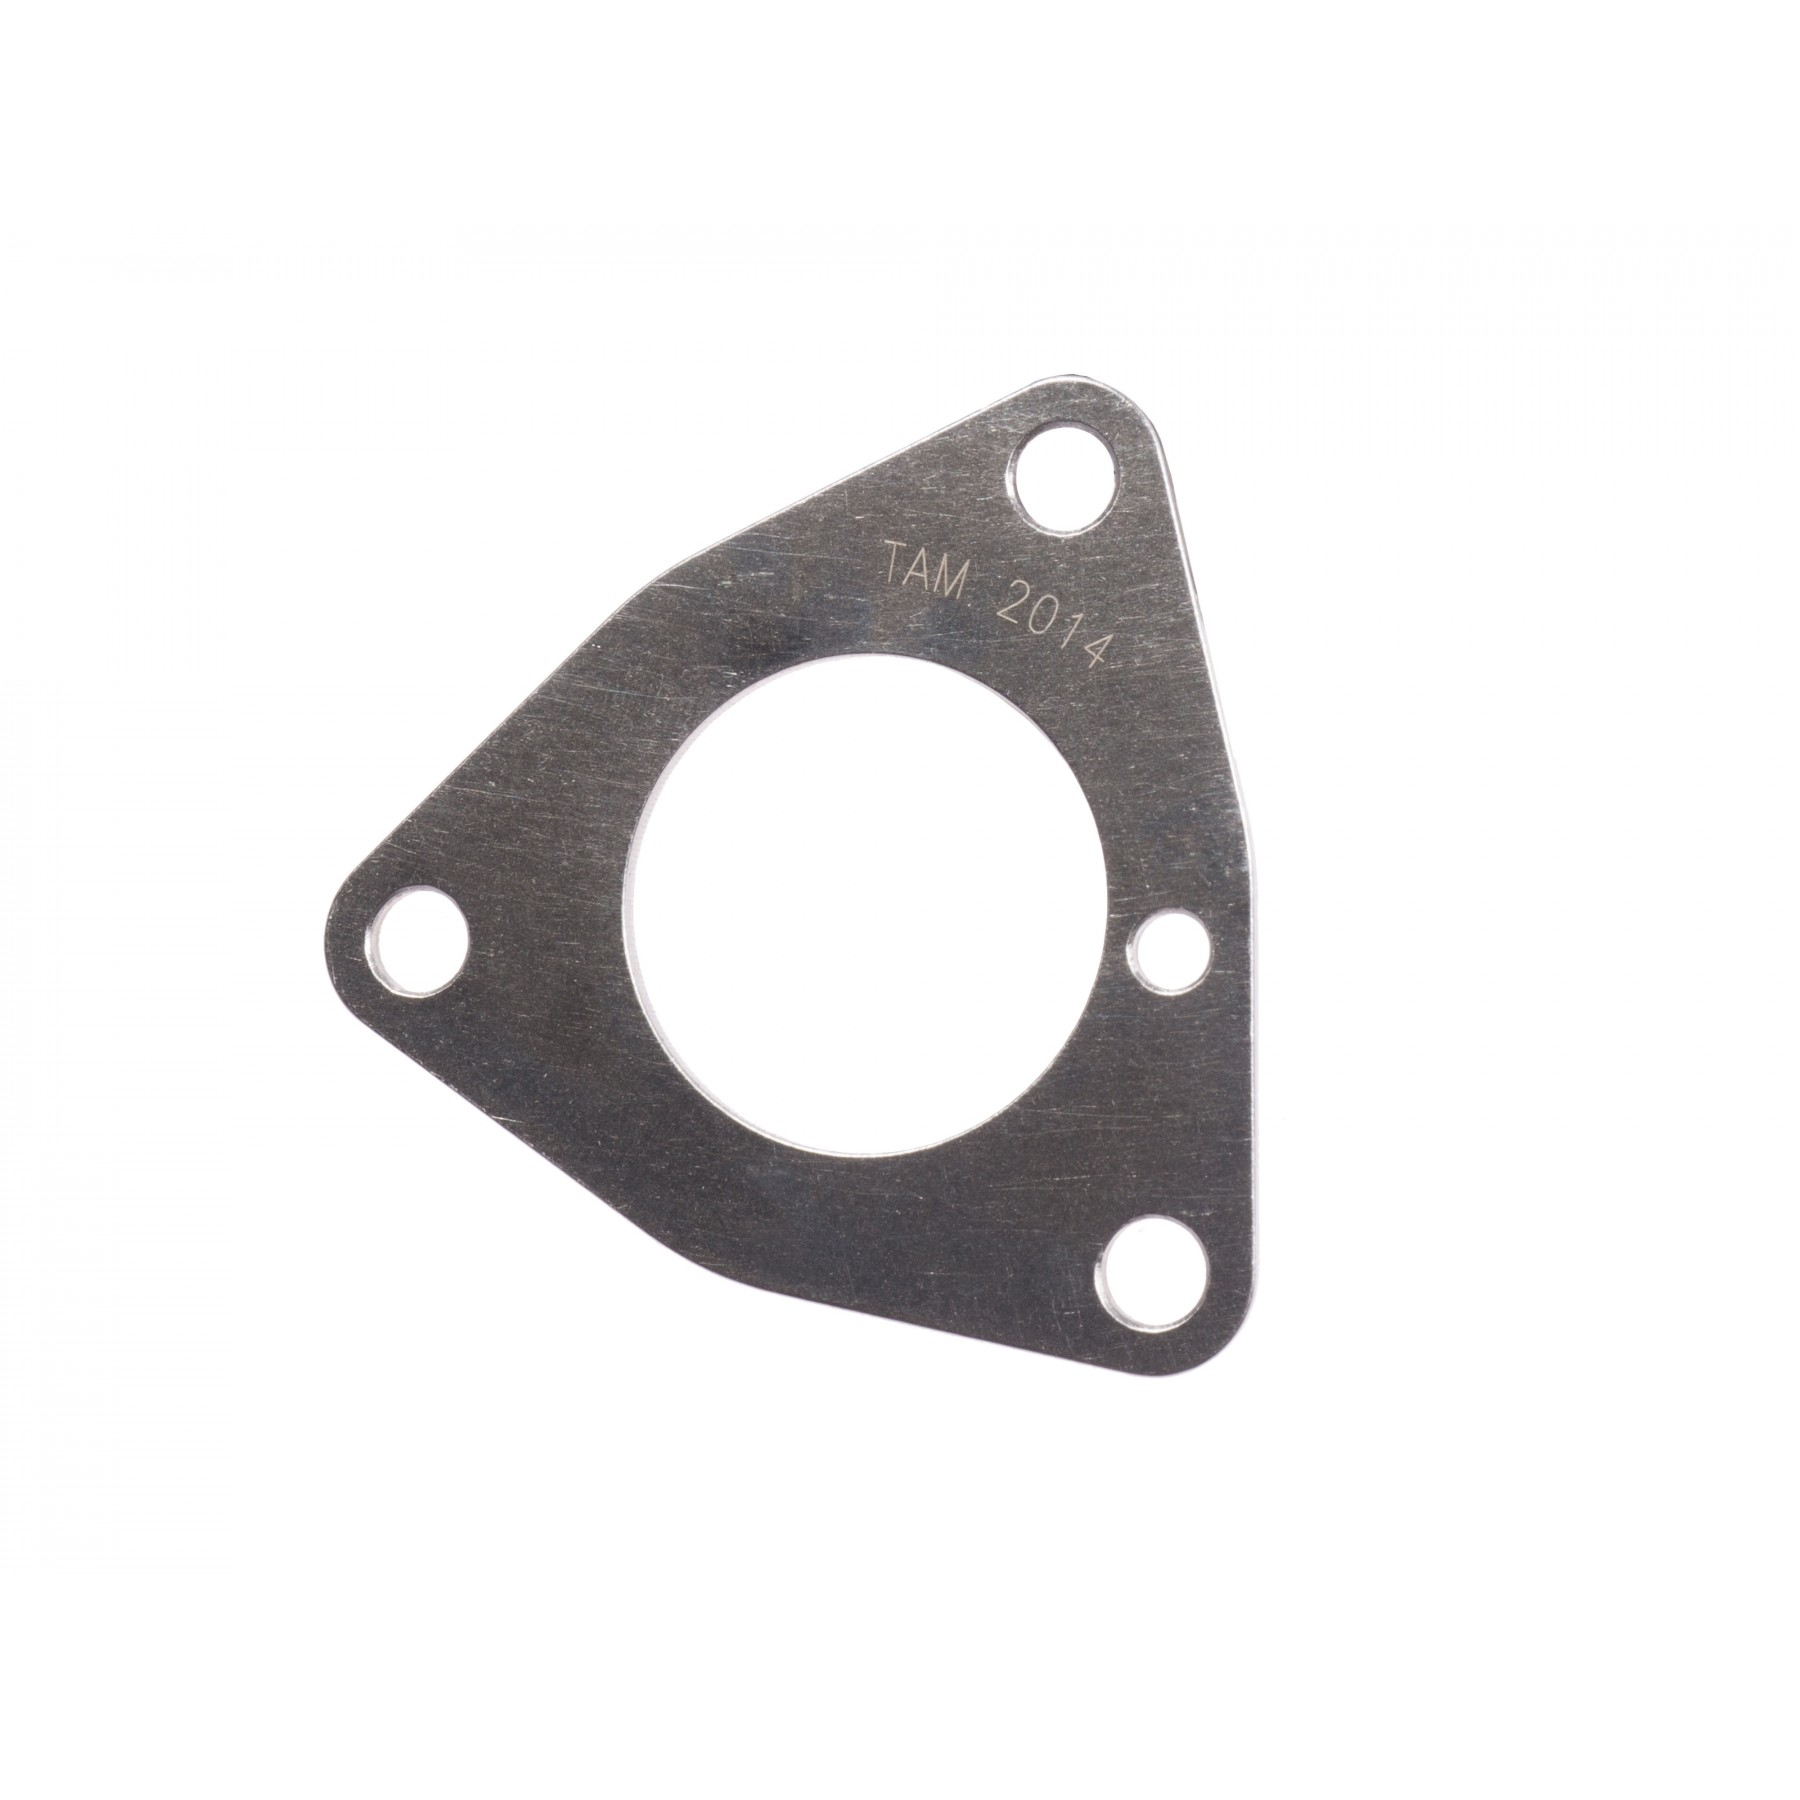 CAMSHAFT TRIANGLE PLATE